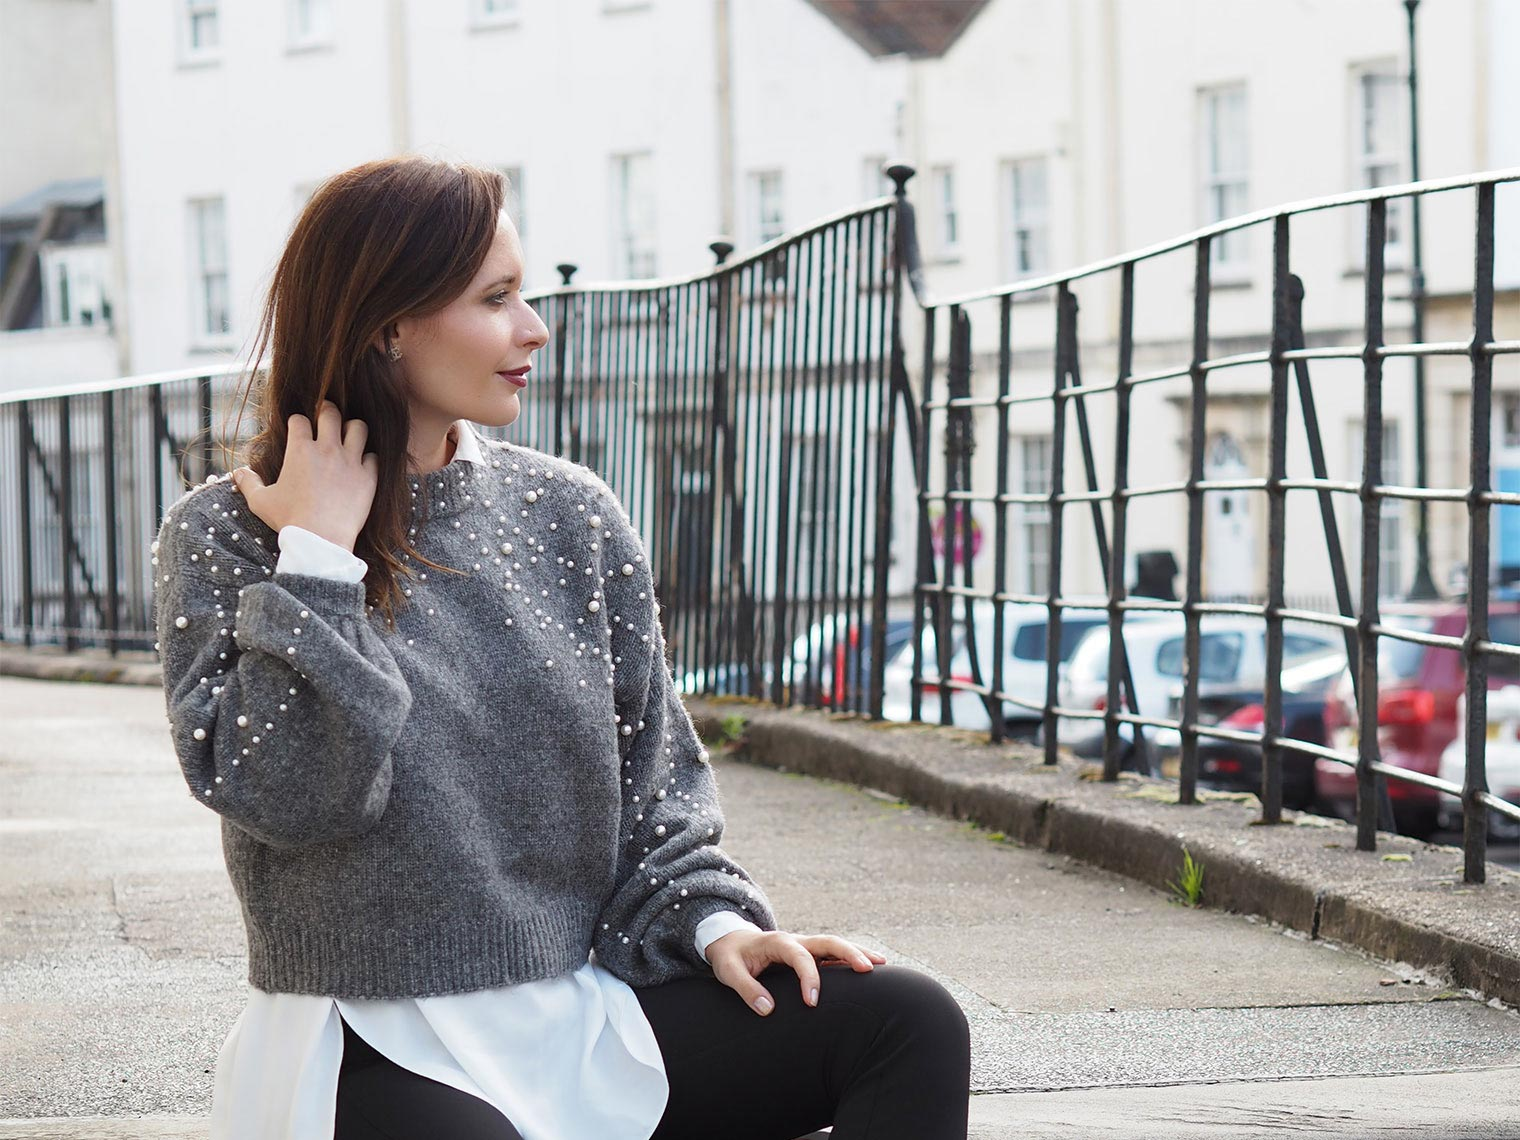 Chic Journal Petra wears pearls embellished grey sweater